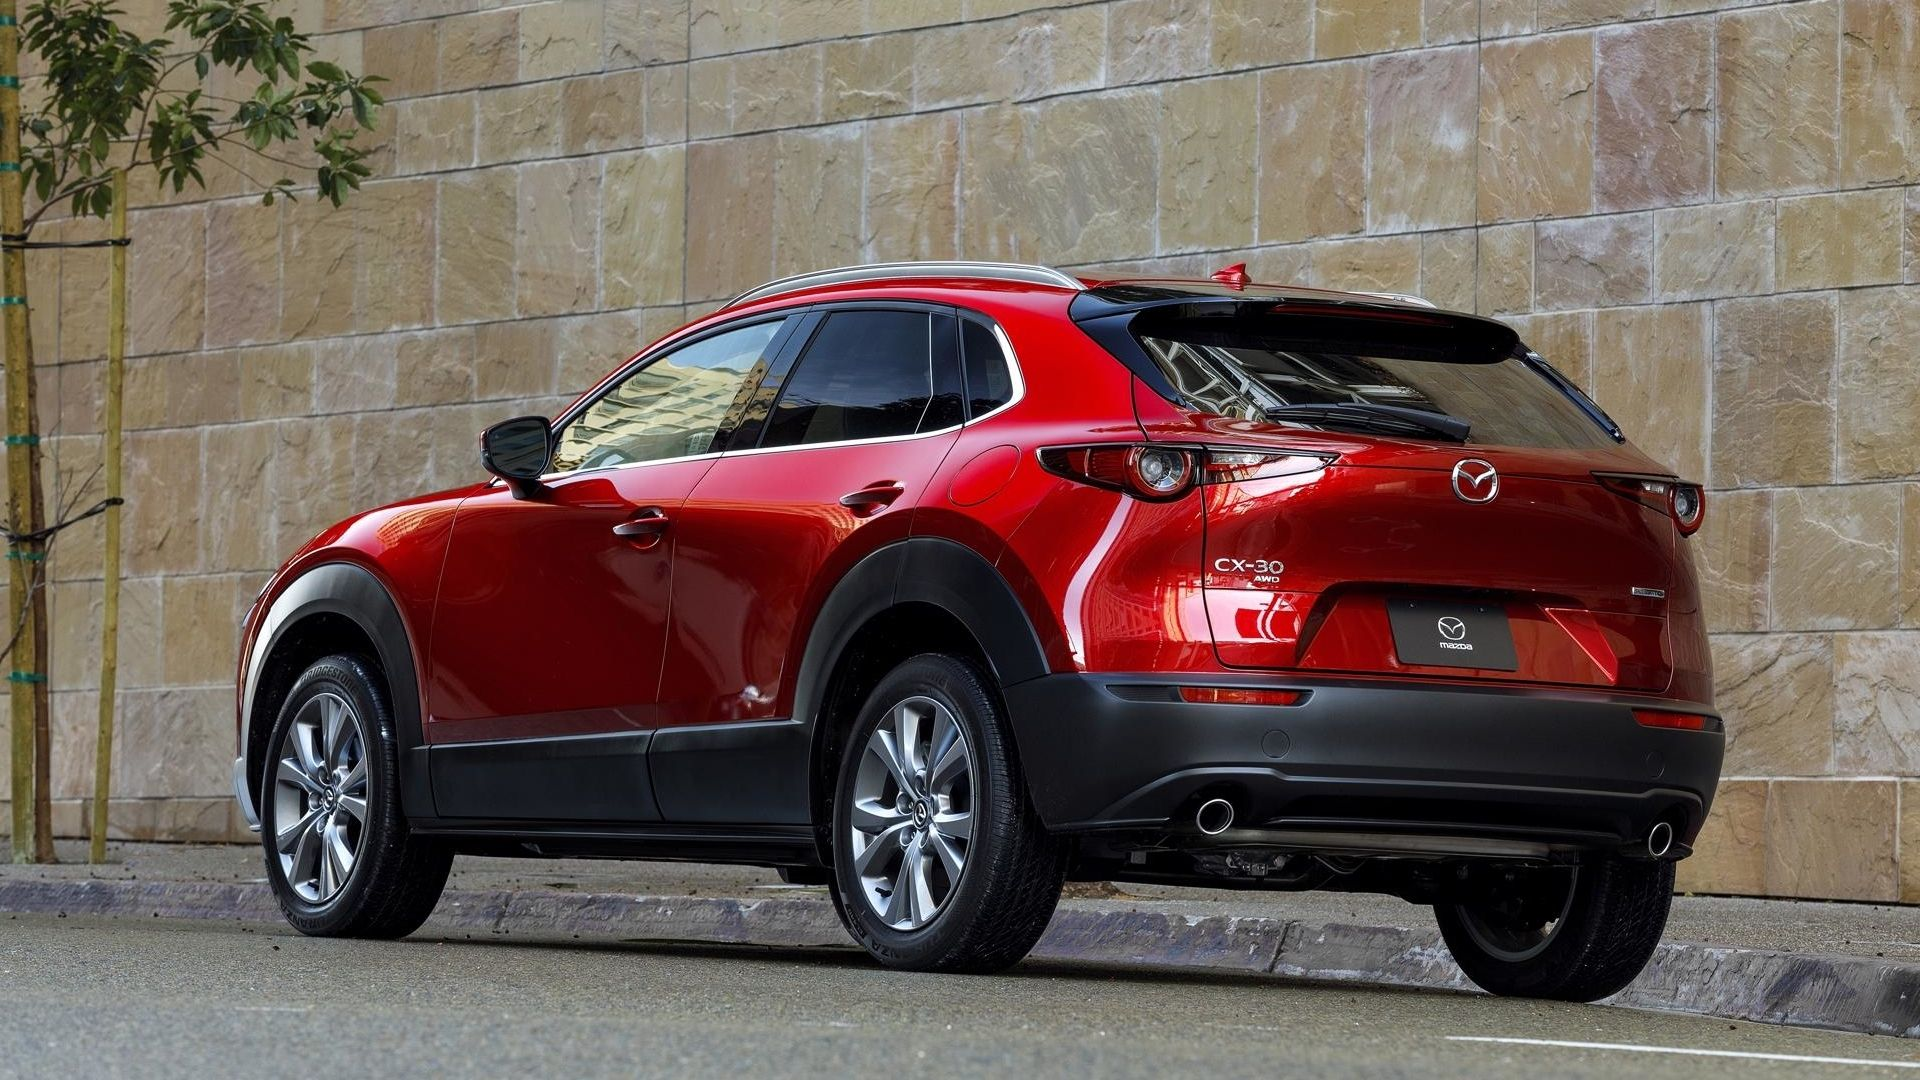 2020 Mazda Cx 30 Review A Great Car Makes A Great Crossover The Drive In 2020 Mazda Car Makes Car